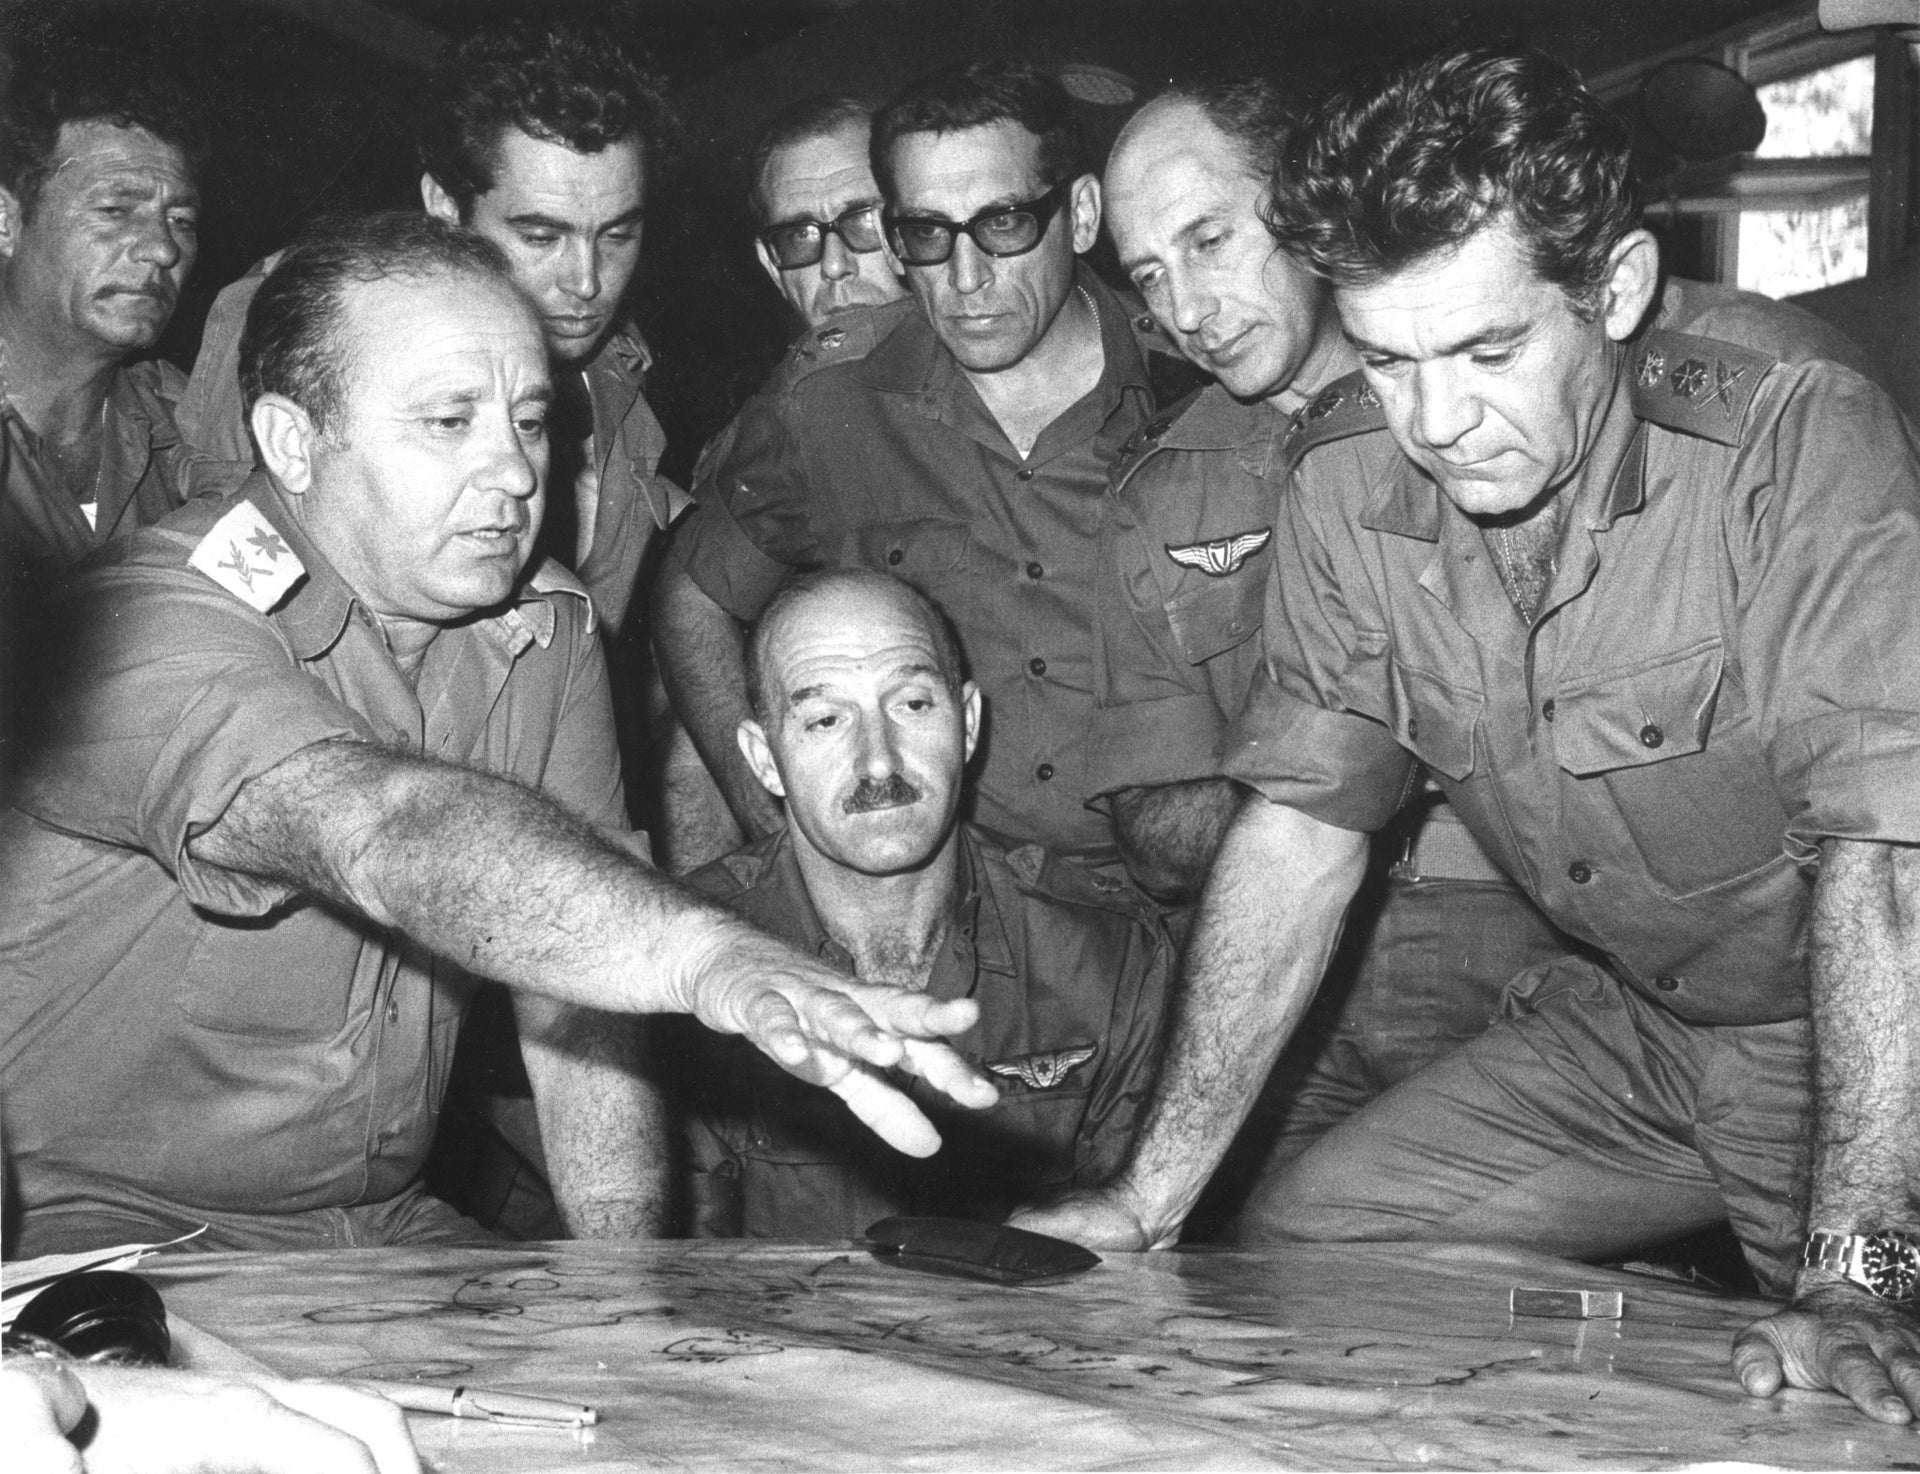 IDF Chief of Staff David Elazar, right, with MI chief Eli Zeira and other top brass during the Yom Kippur War, October 1973.